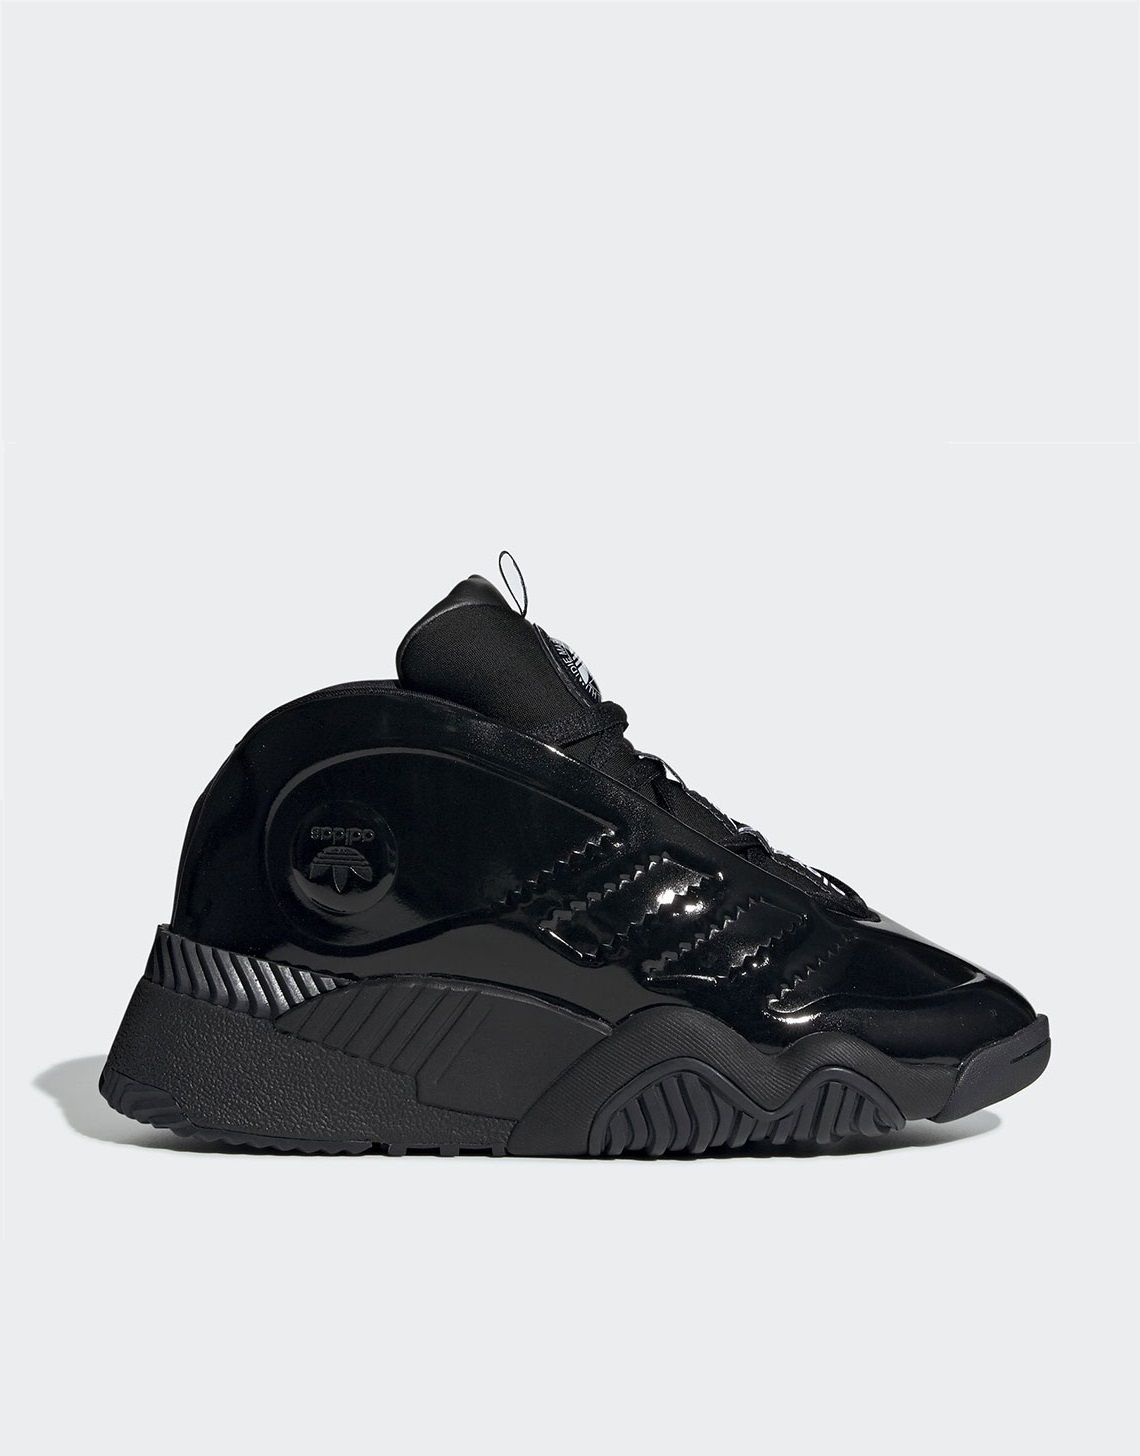 9c5ace6ed08 ... Sneakers  Puma x Alexander McQueen by Ian Bettany. Alexander Wang x  adidas AW Turnout Bball